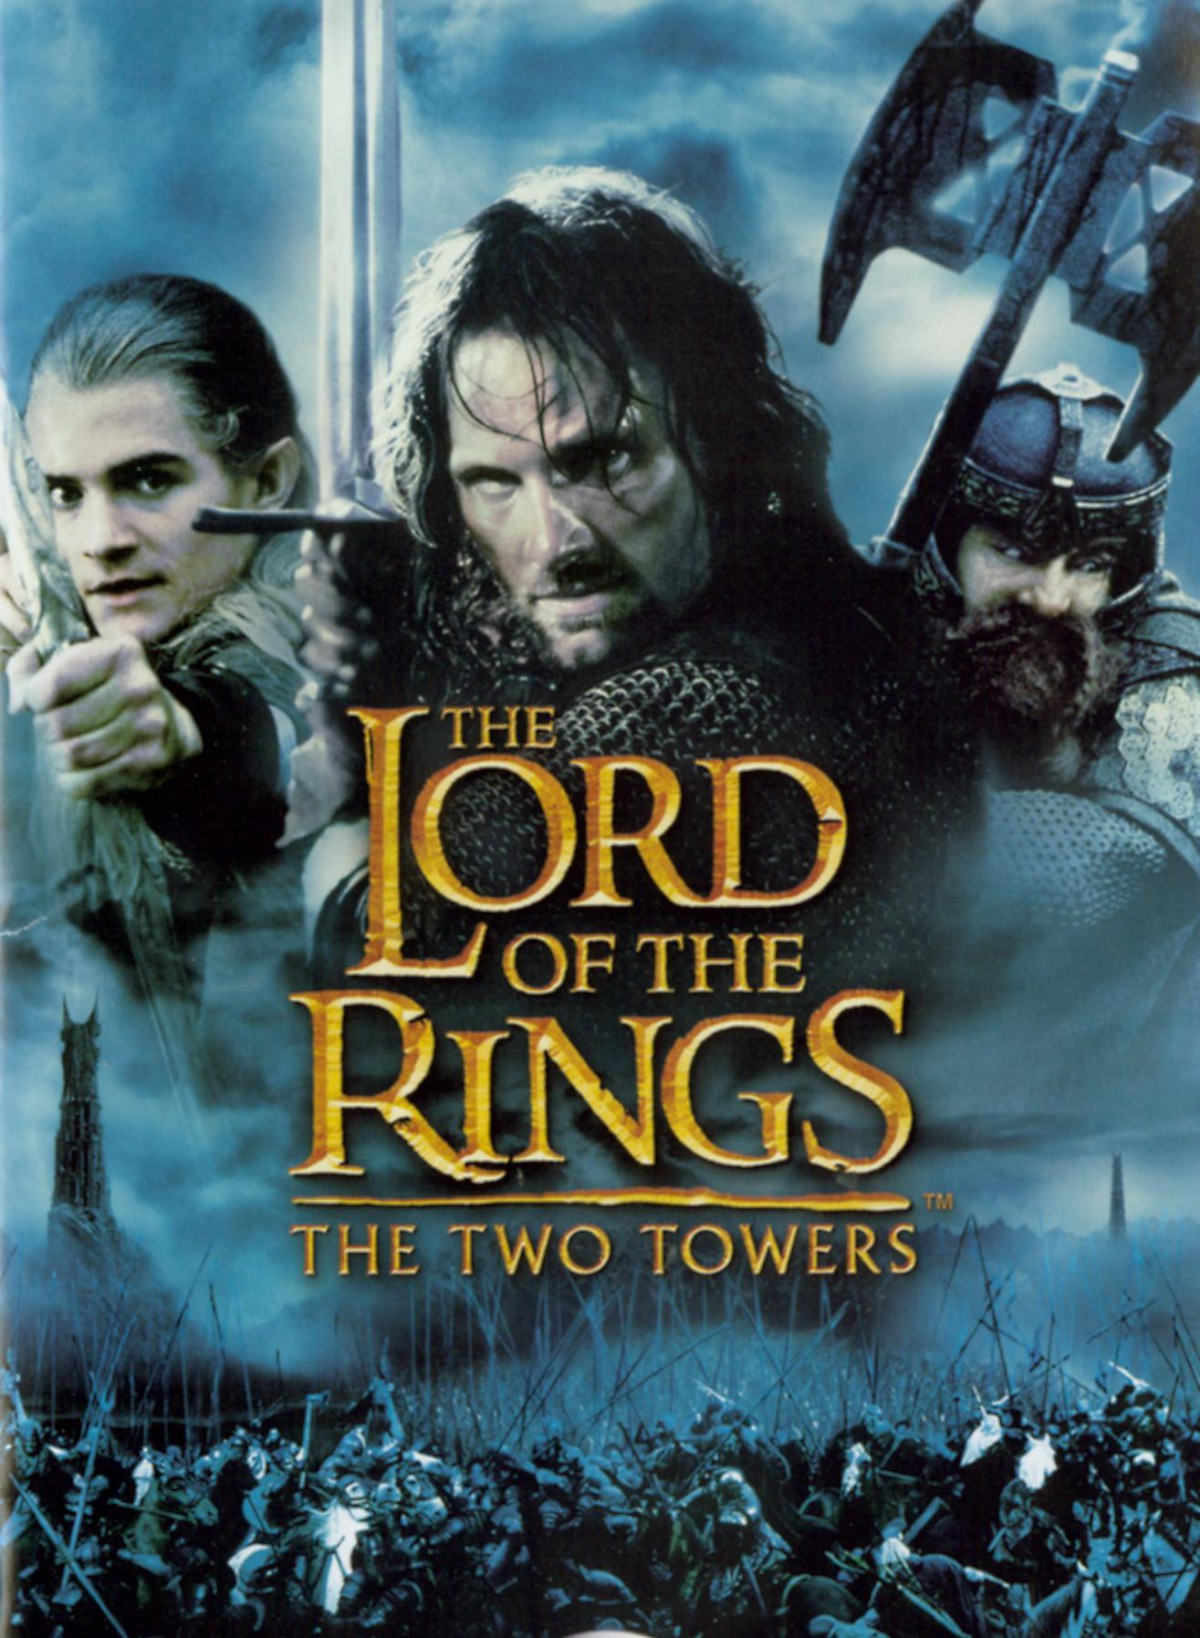 90. Lord of the Rings - The Two Towers (2002)